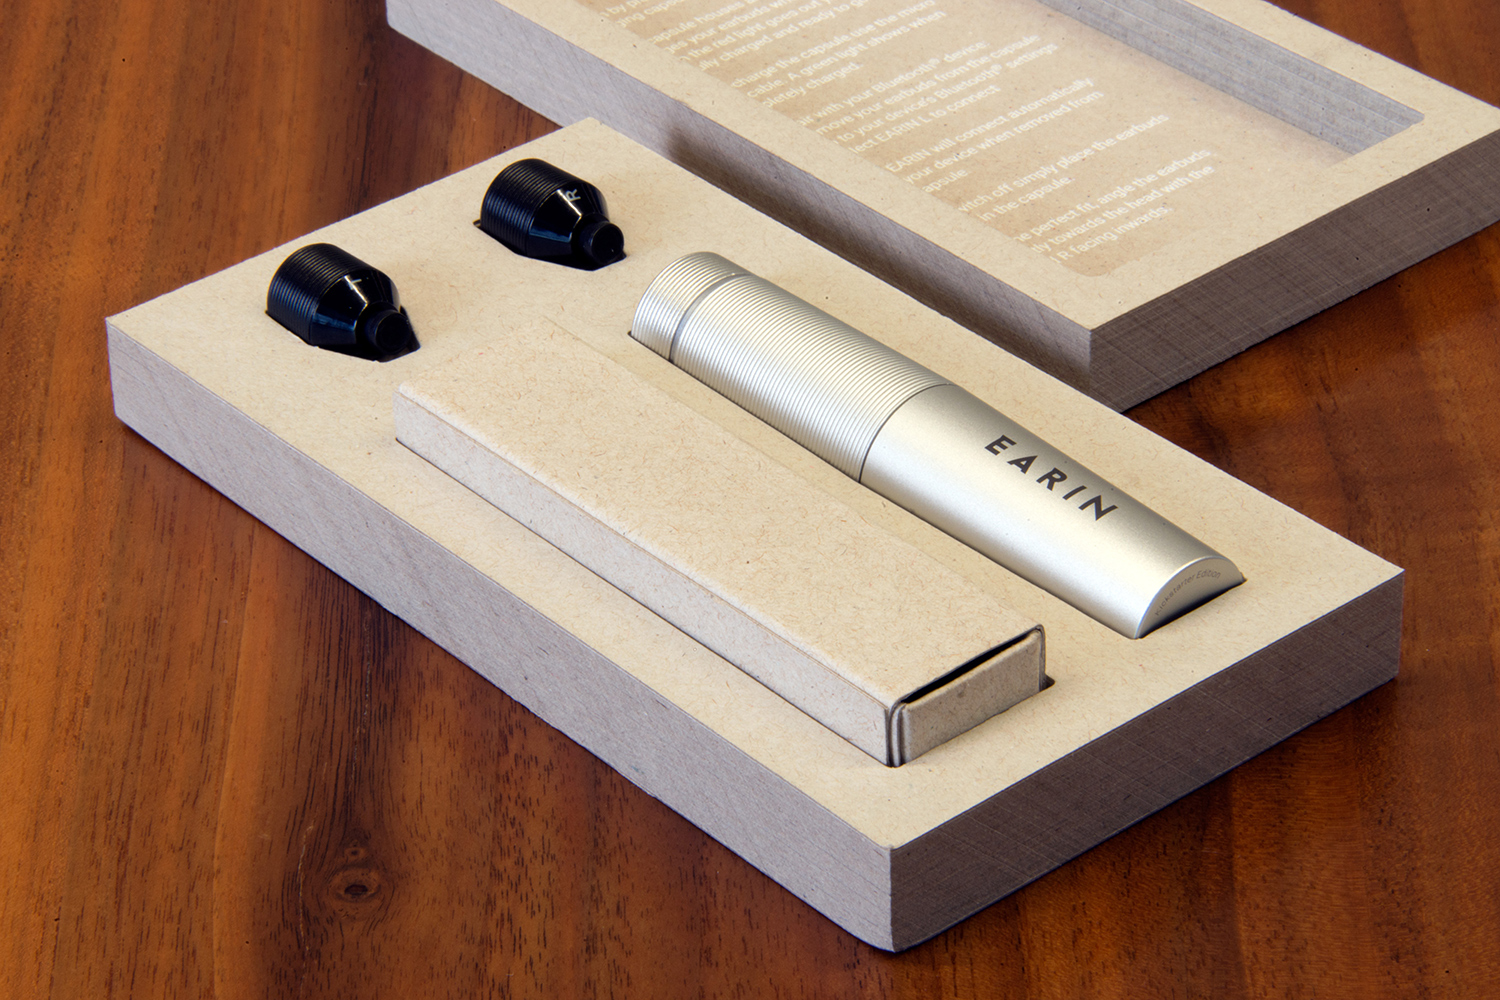 Earin Wireless Earbuds Hands On Review Video   Digital Trends